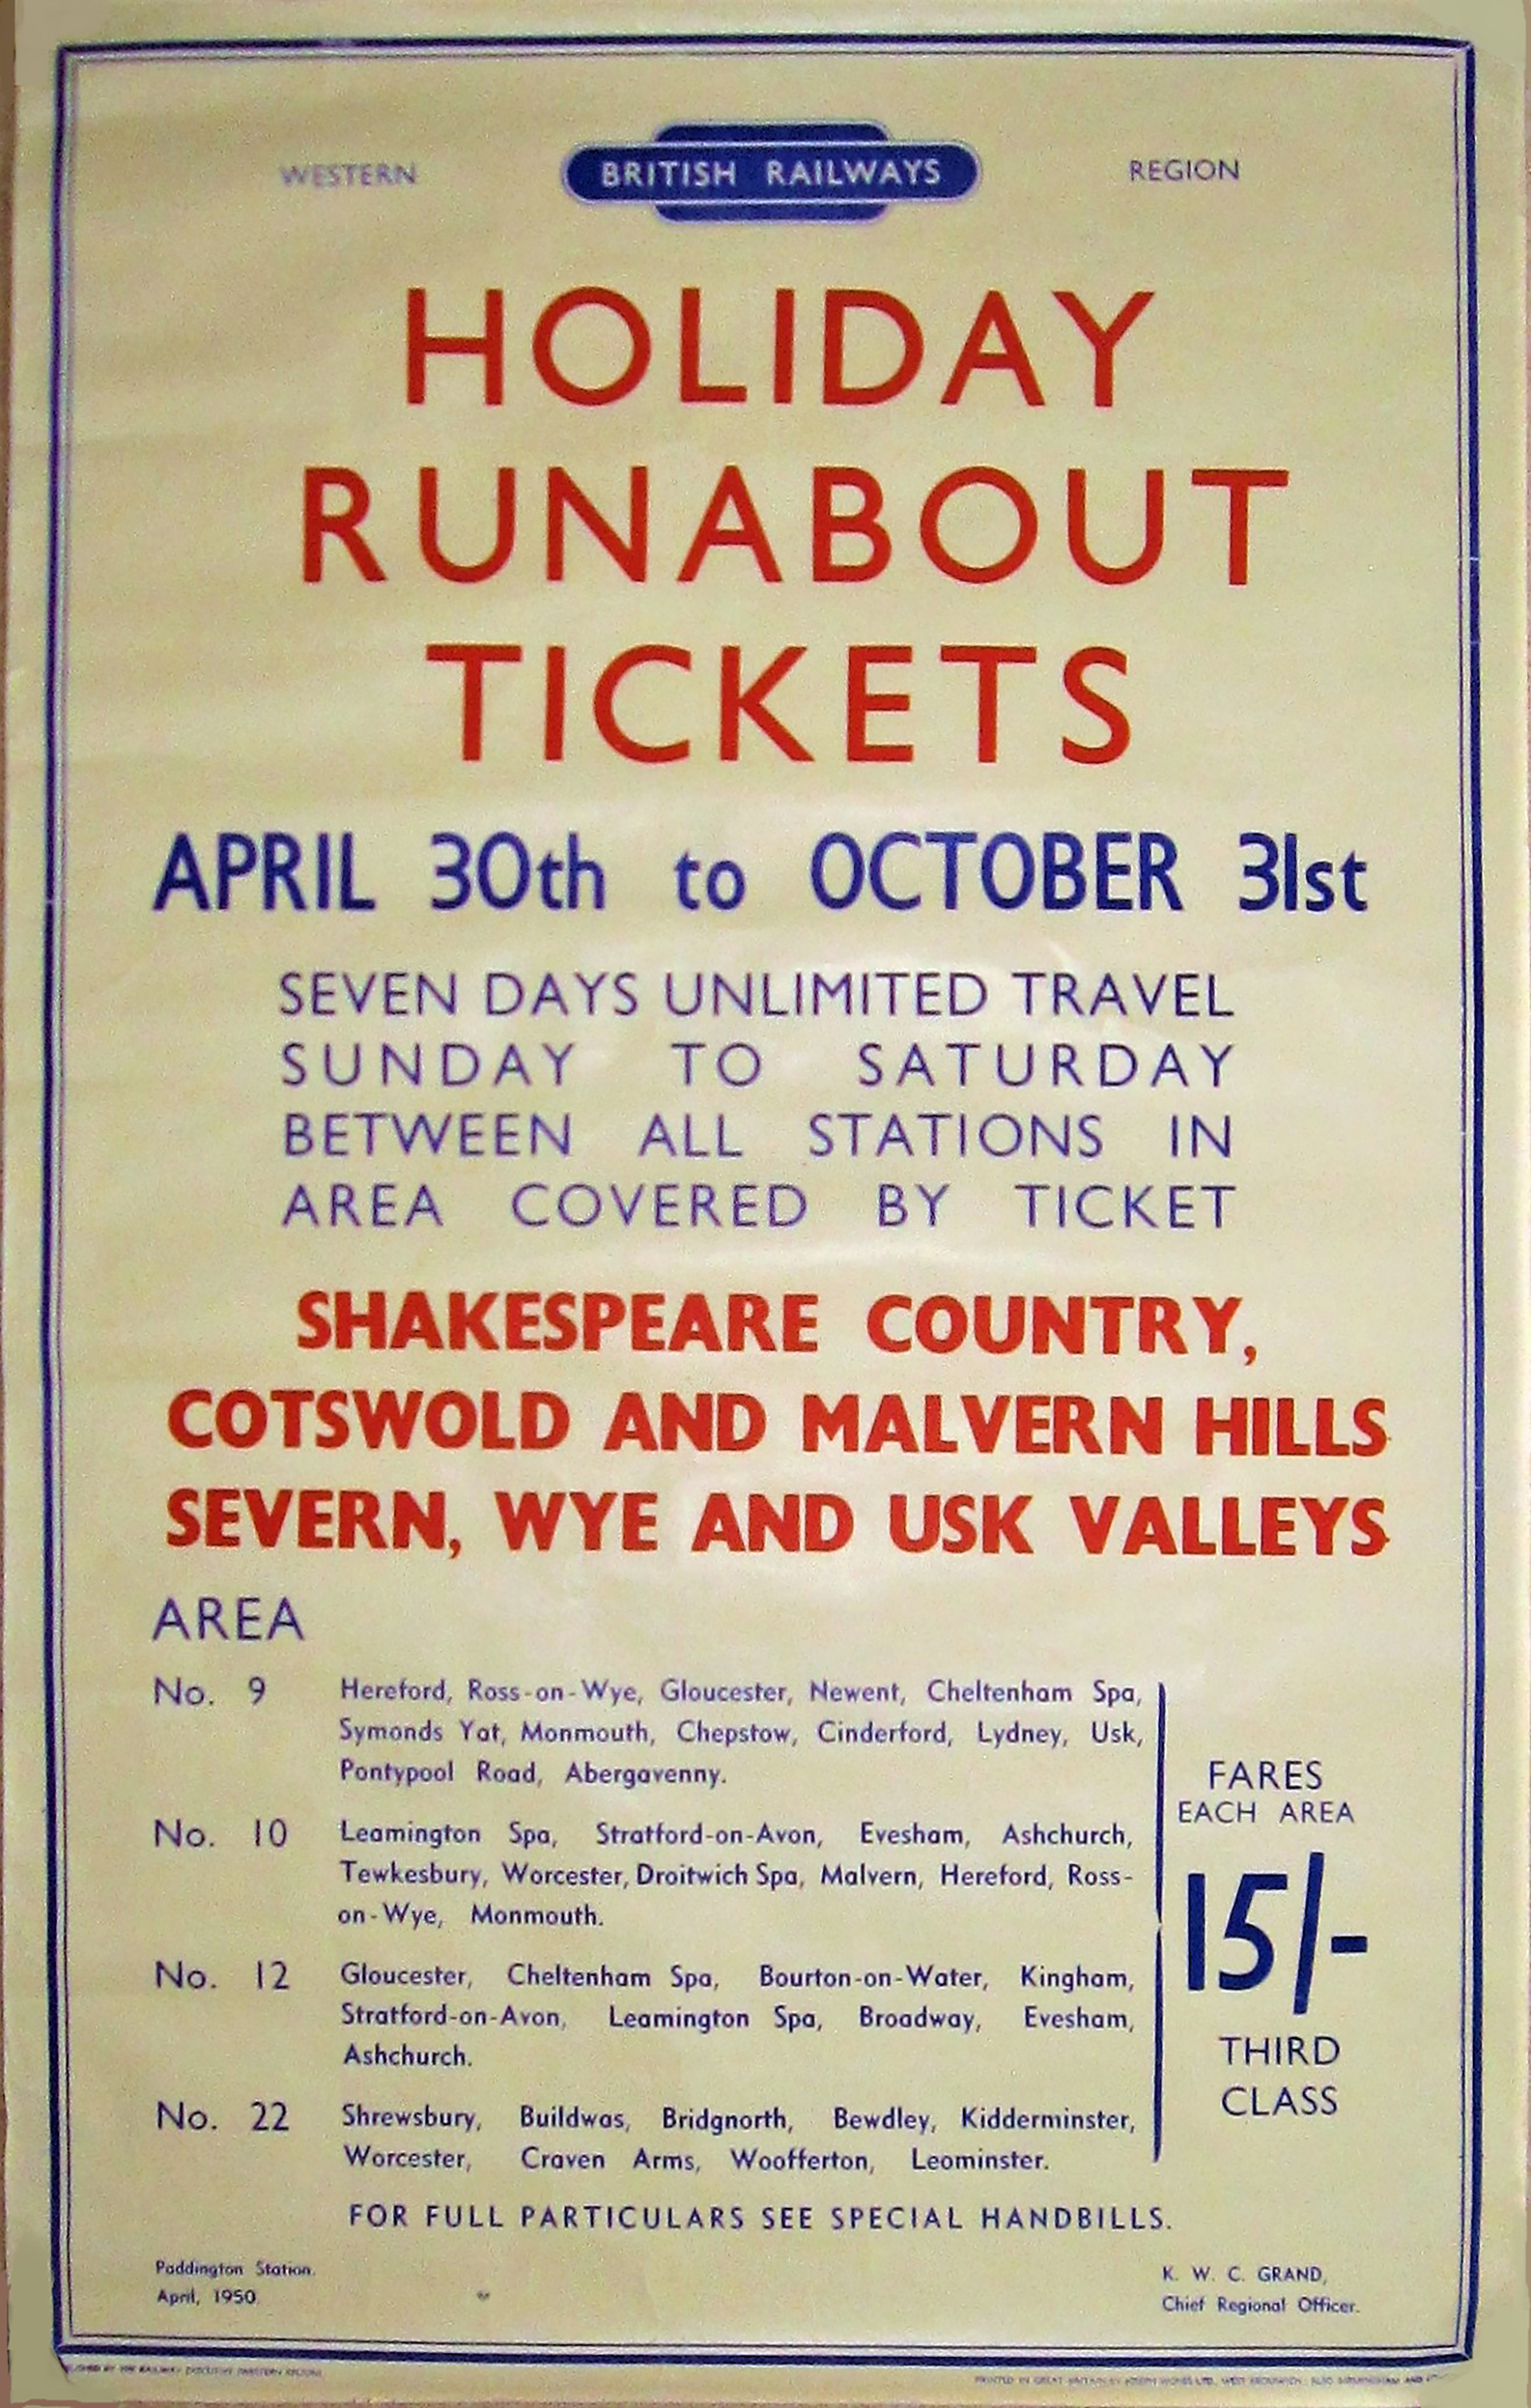 British Railways double royal poster advertising HOLIDAY RUNABOUT TICKETS in APRIL 1950. Priced at